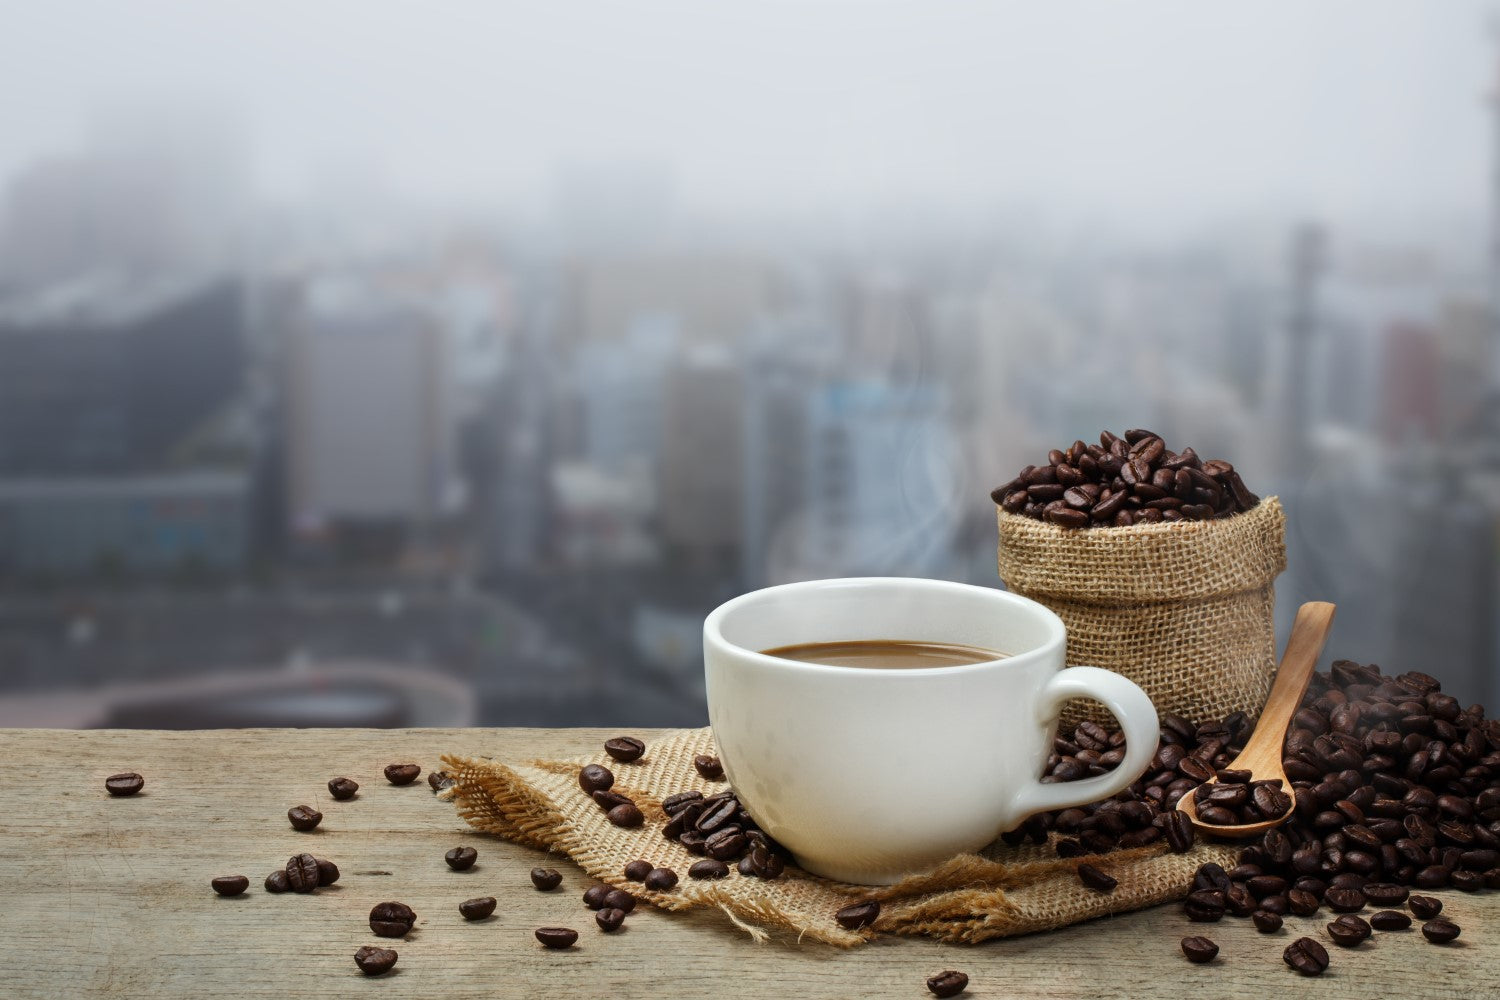 cup of coffee with coffe beans